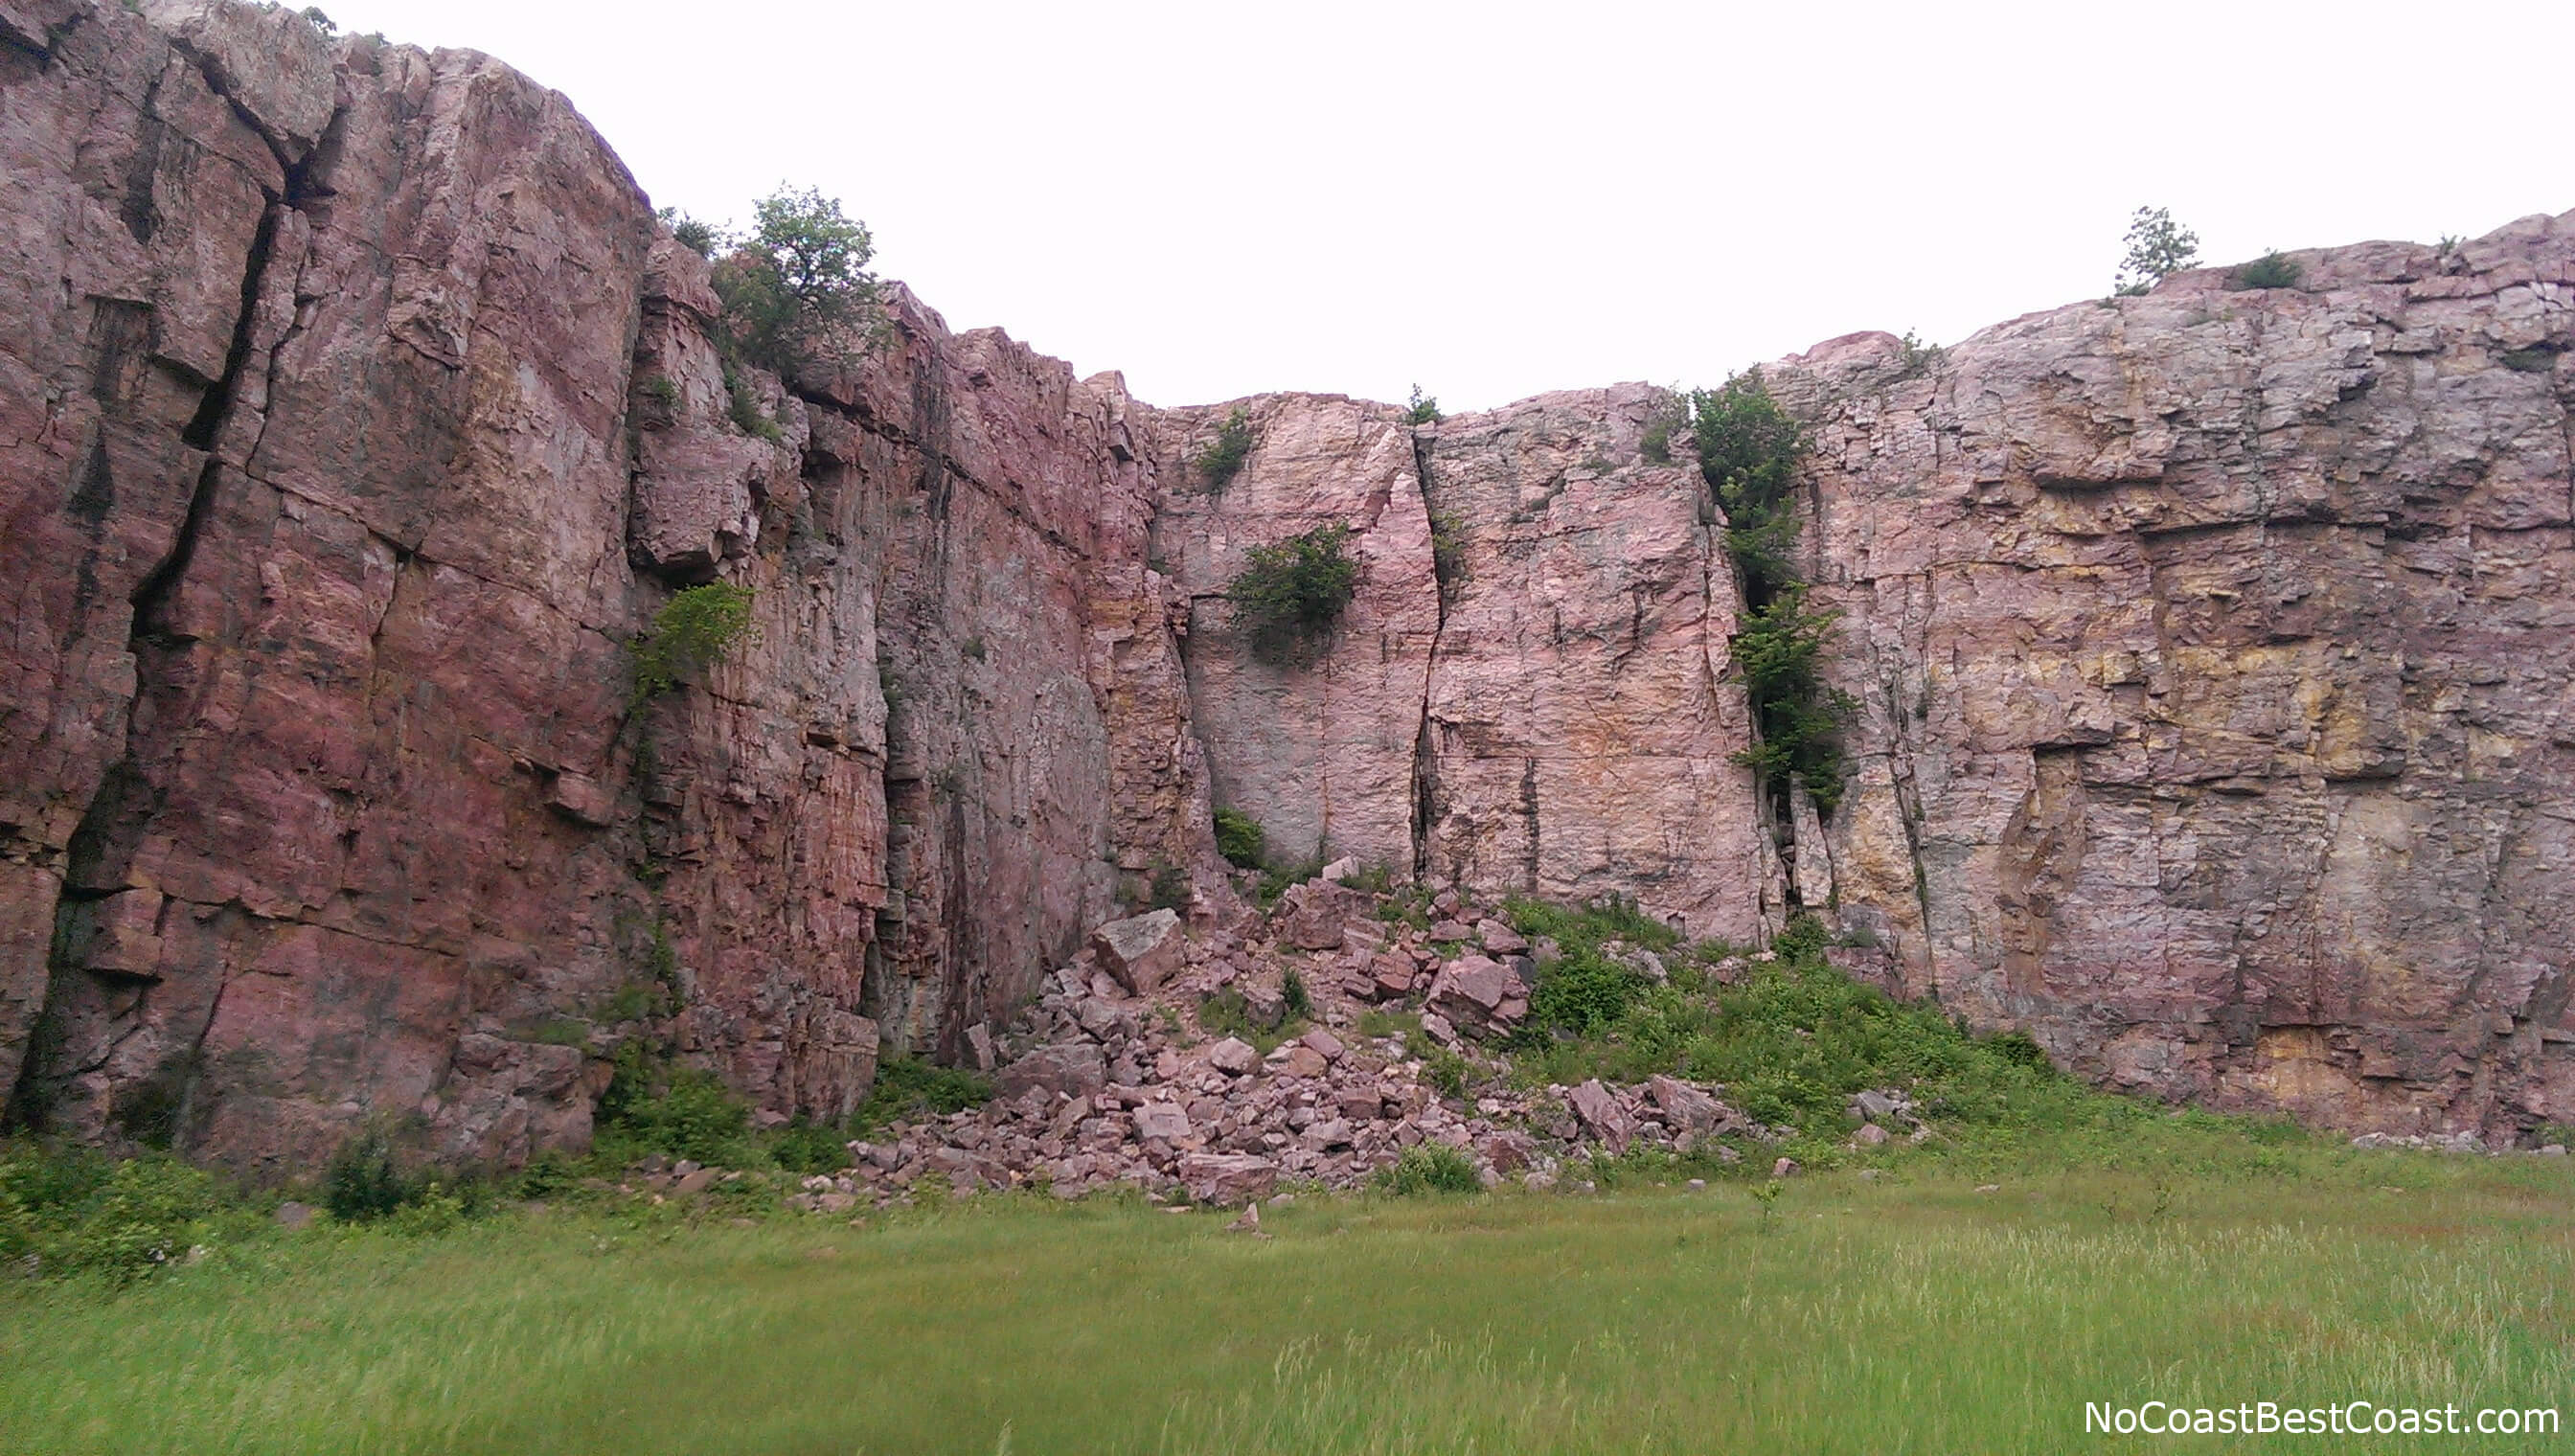 The pink Sioux Quartzite cliffs of the historic quarry